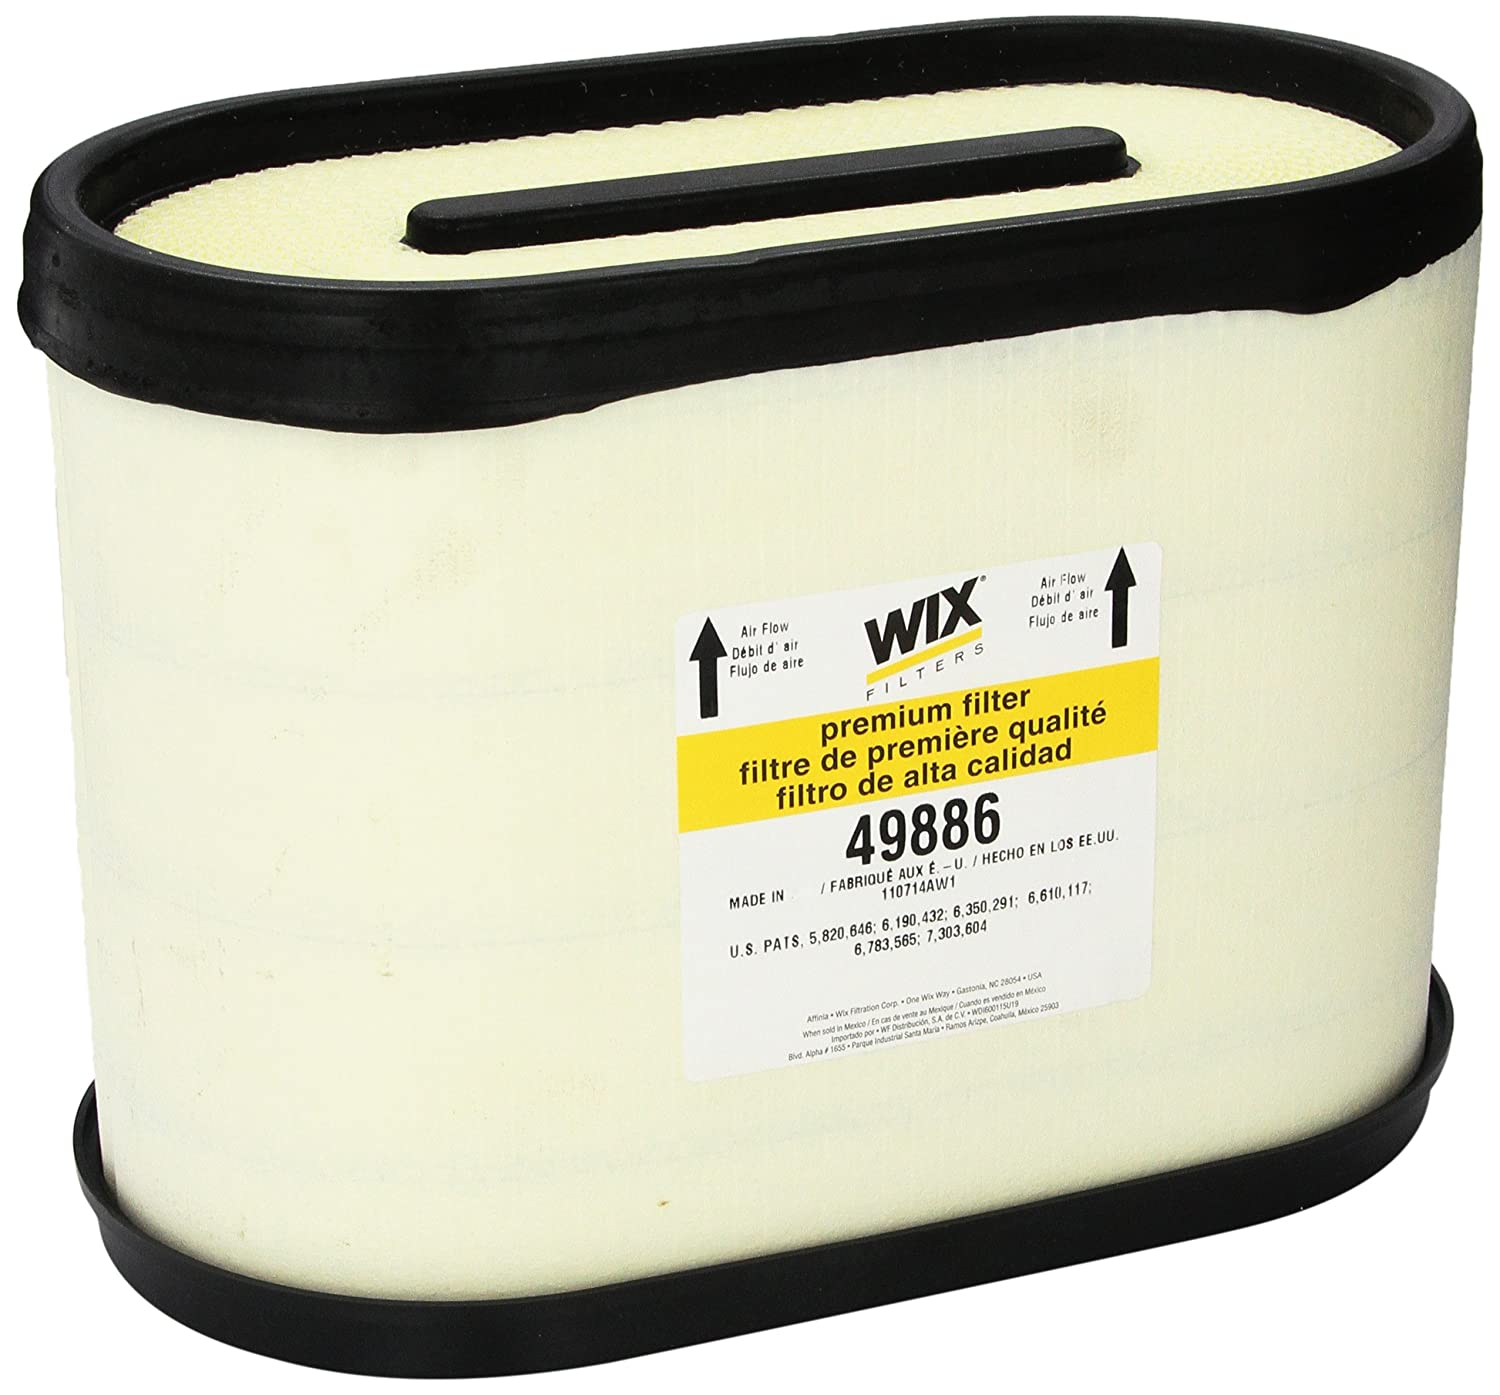 WIX Filters - 49886 Heavy Duty Corrugated Style Air Filter, Pack of 1